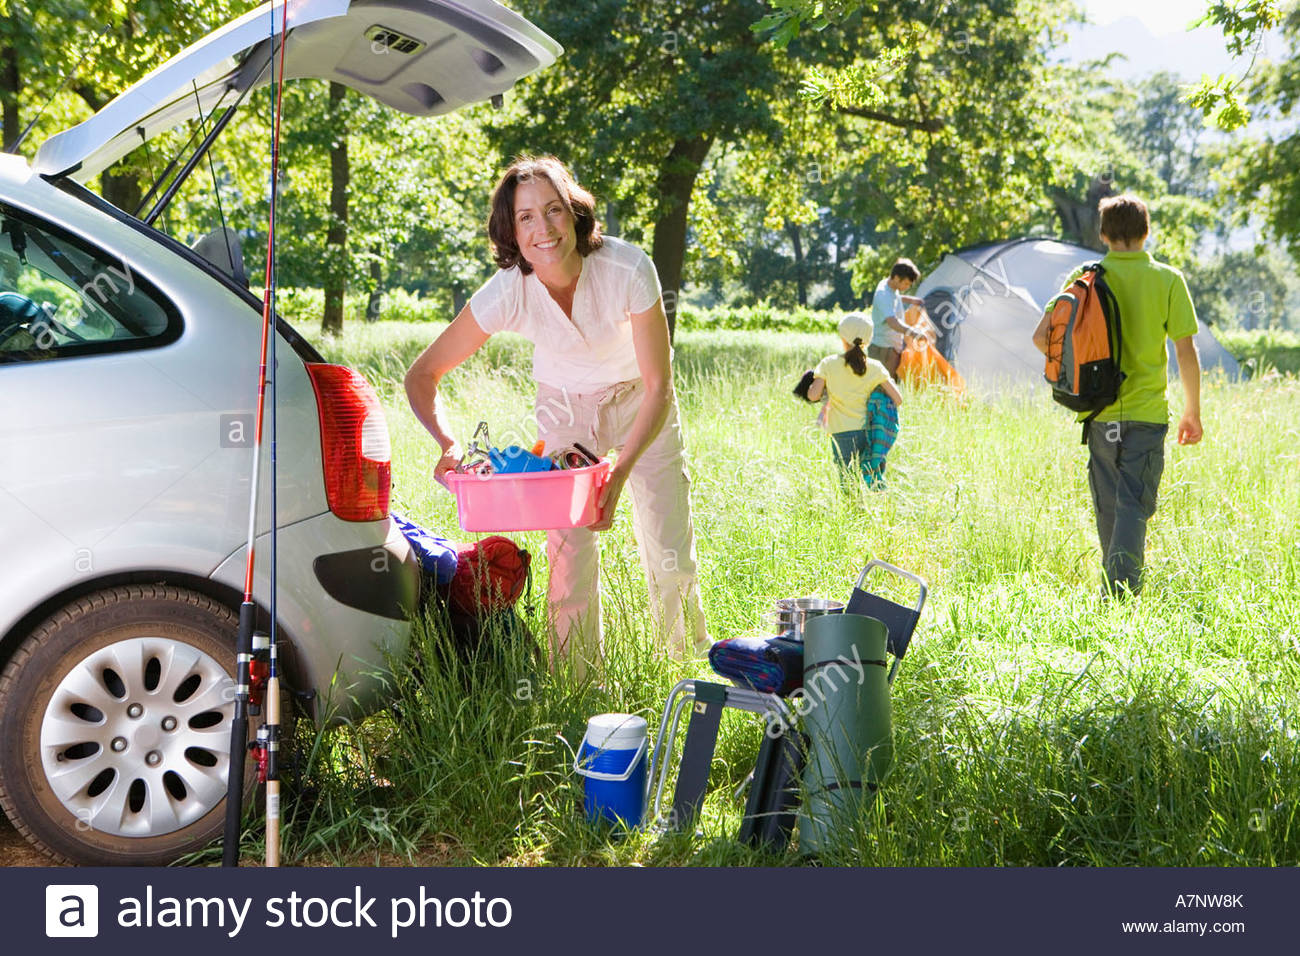 Family unloading car on camping trip focus on woman holding pink container beside car boot smiling portrait Stock Photo